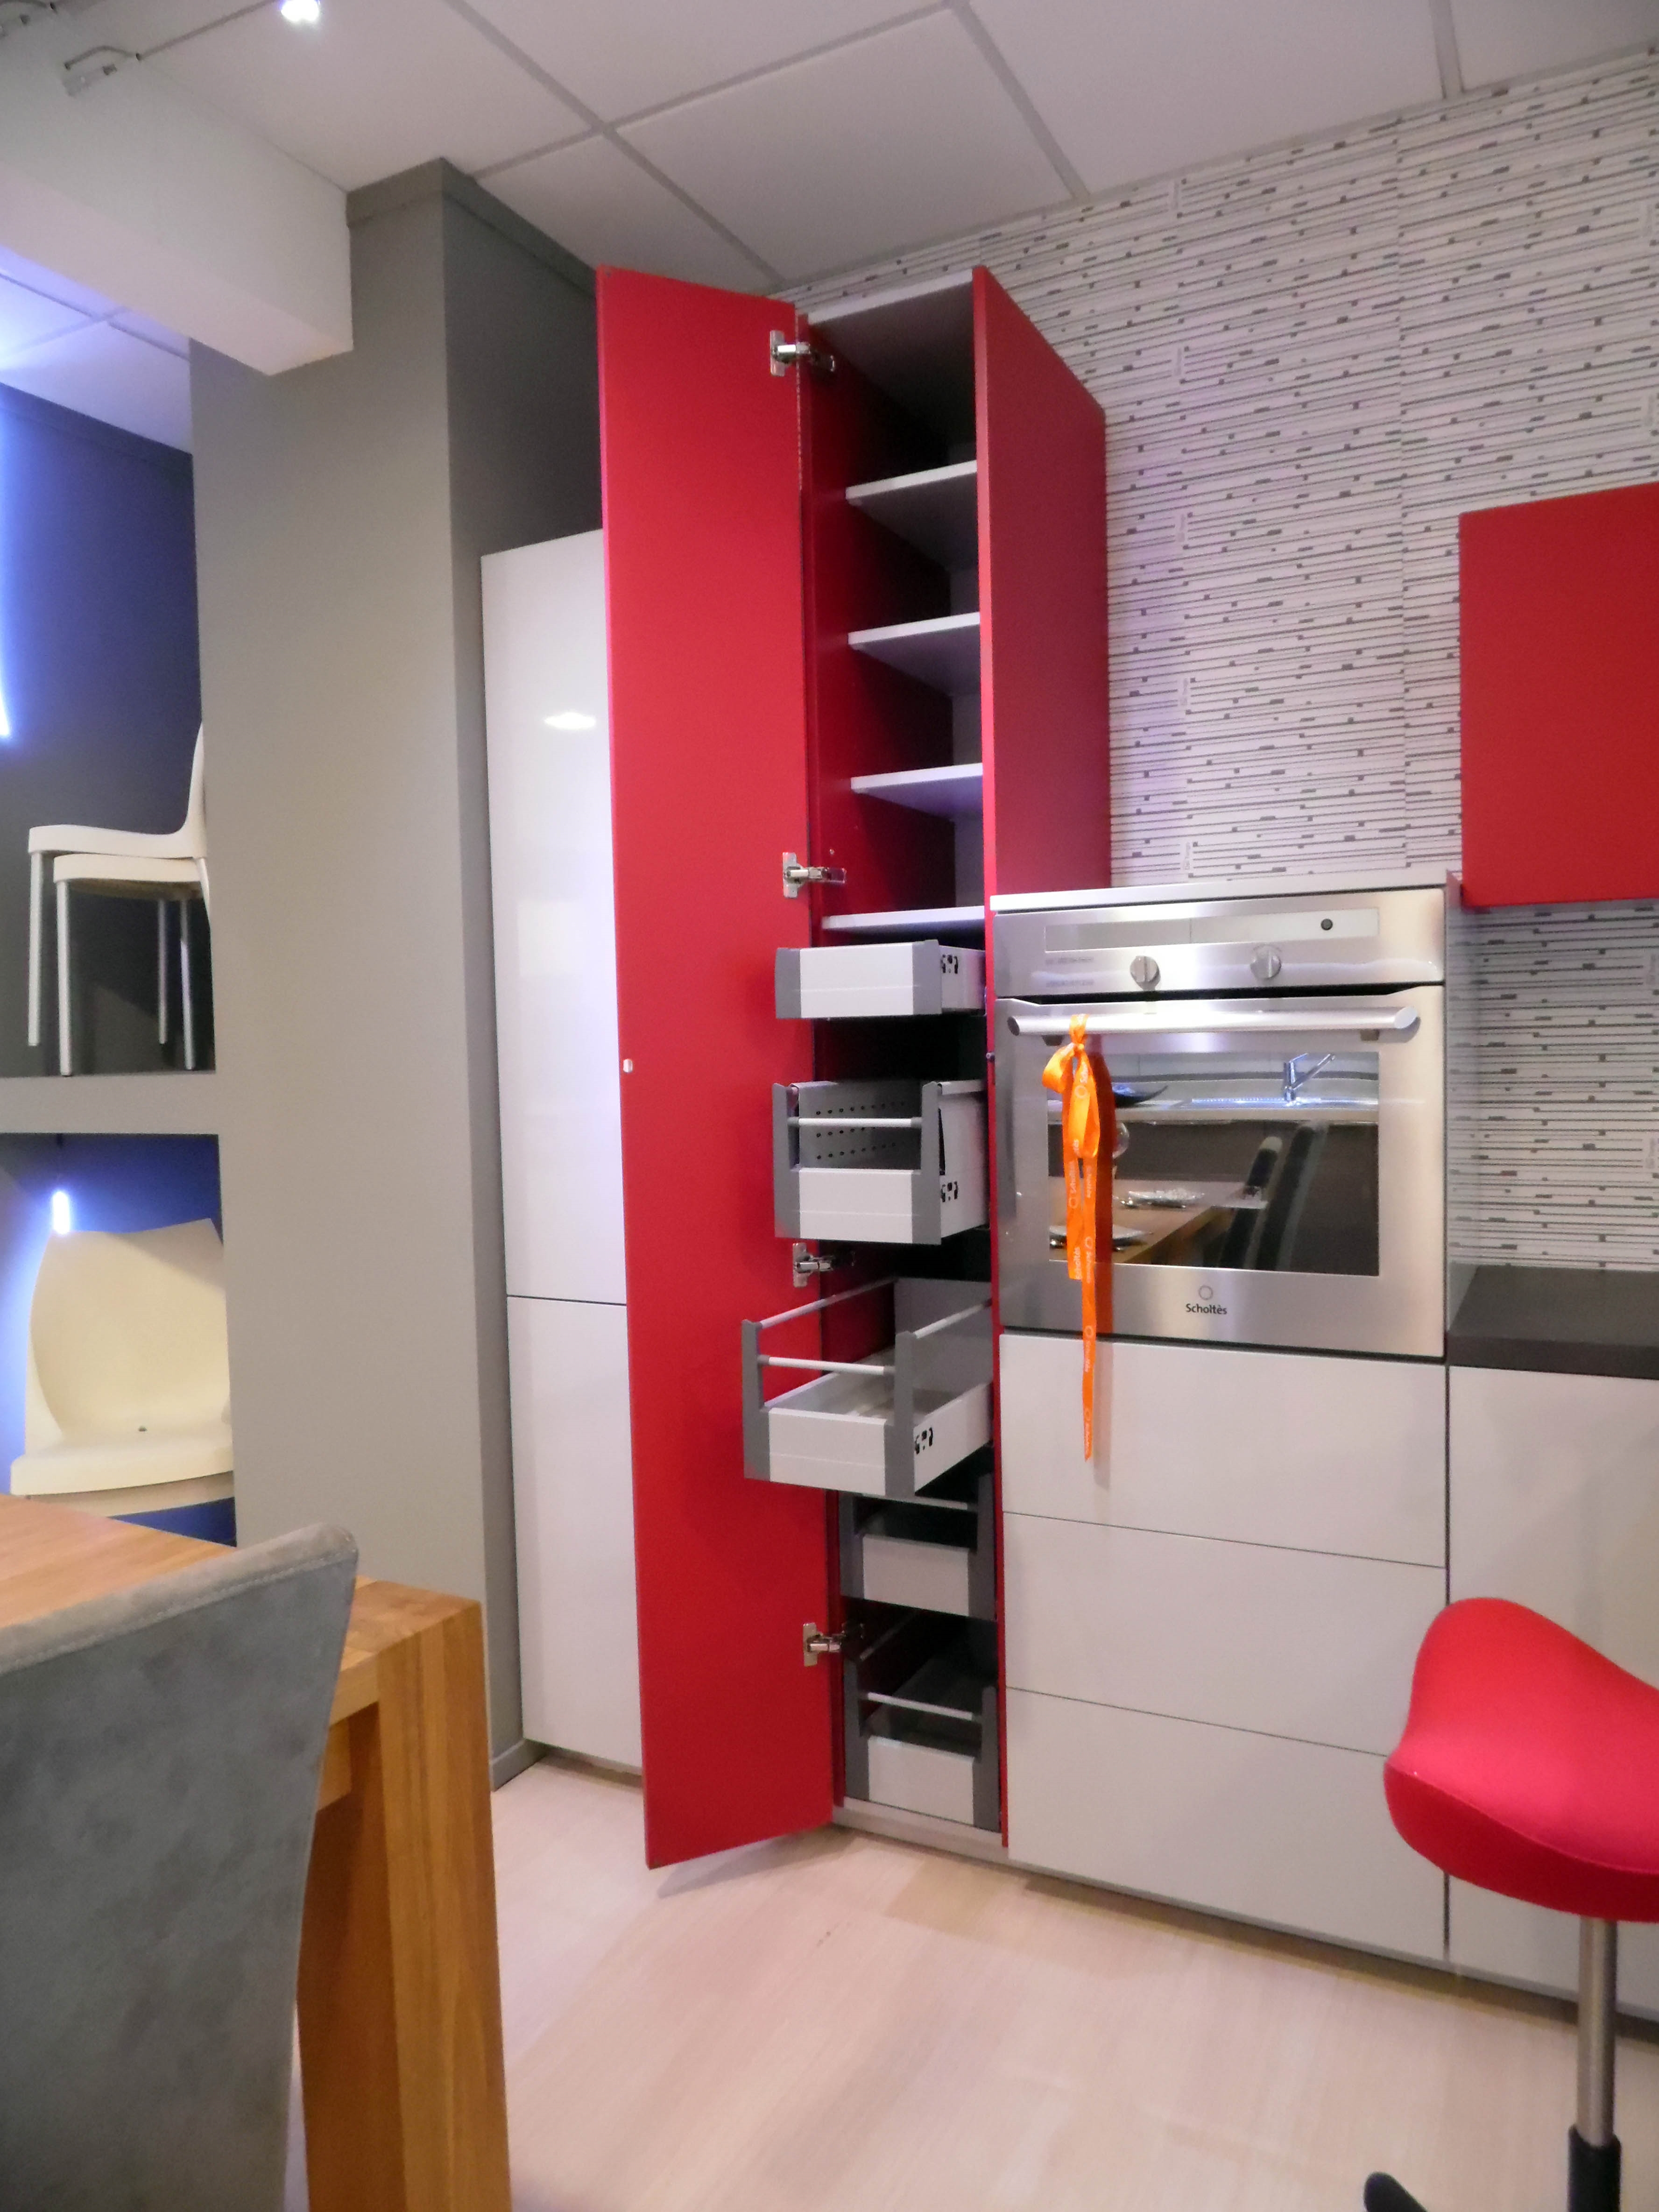 Best Cucine Del Tongo Opinioni Pictures - Ideas & Design 2017 ...